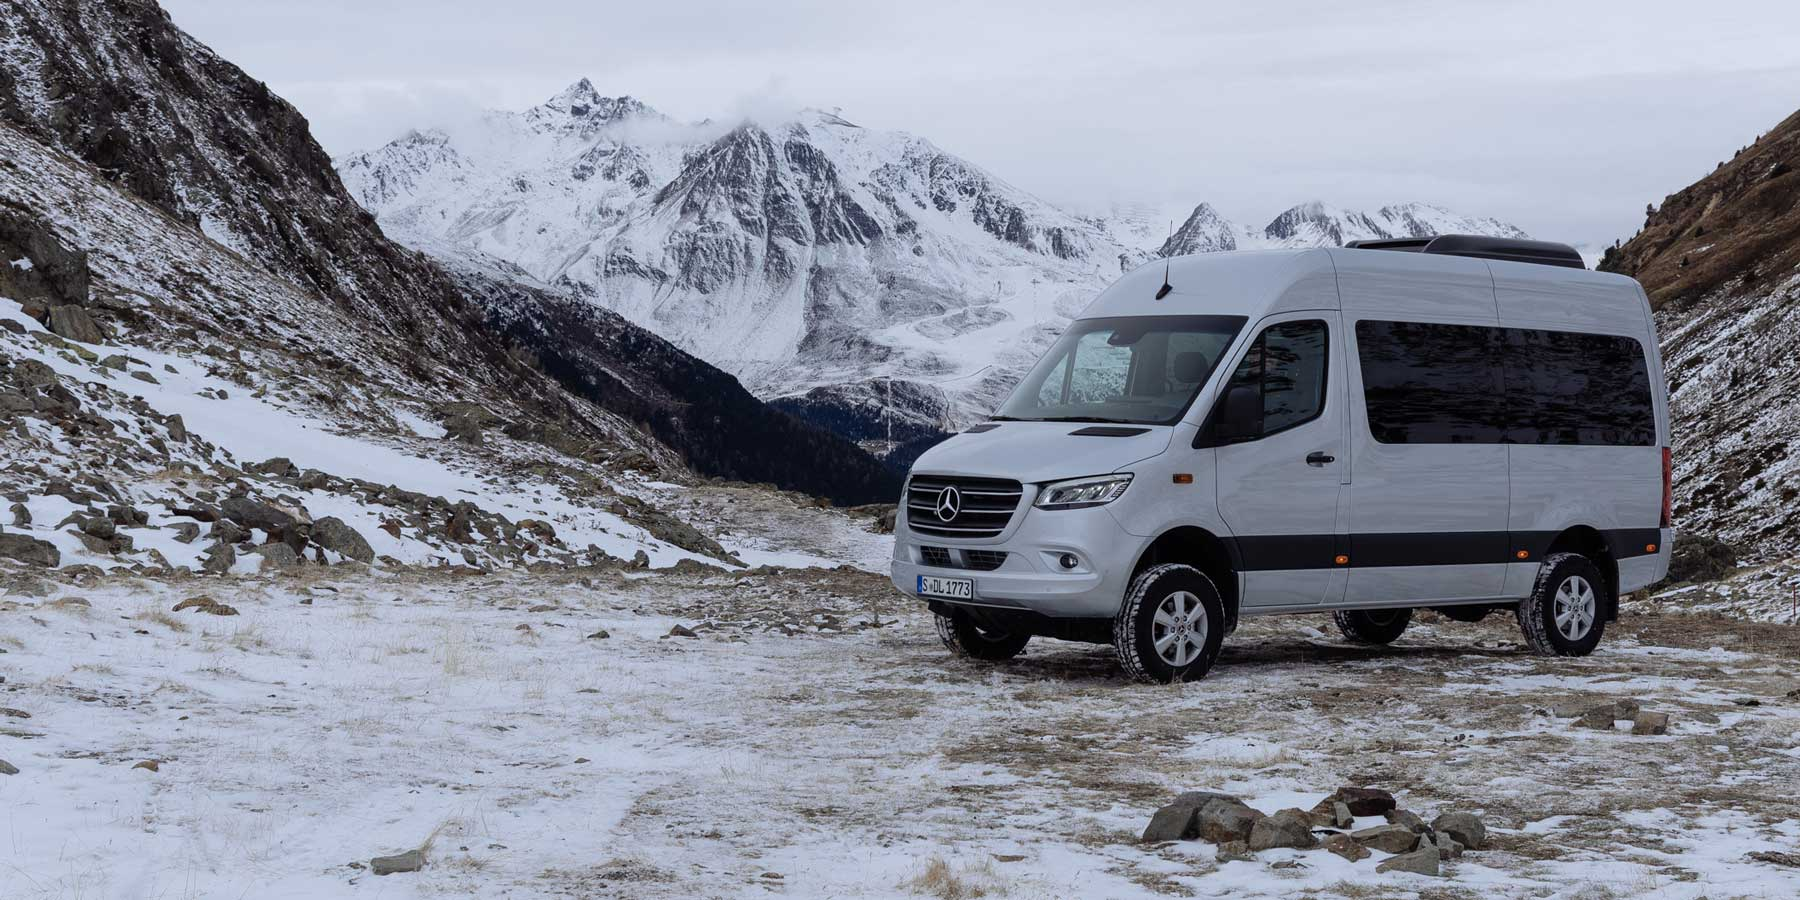 The 2019 Sprinter 4x4 Passenger Van